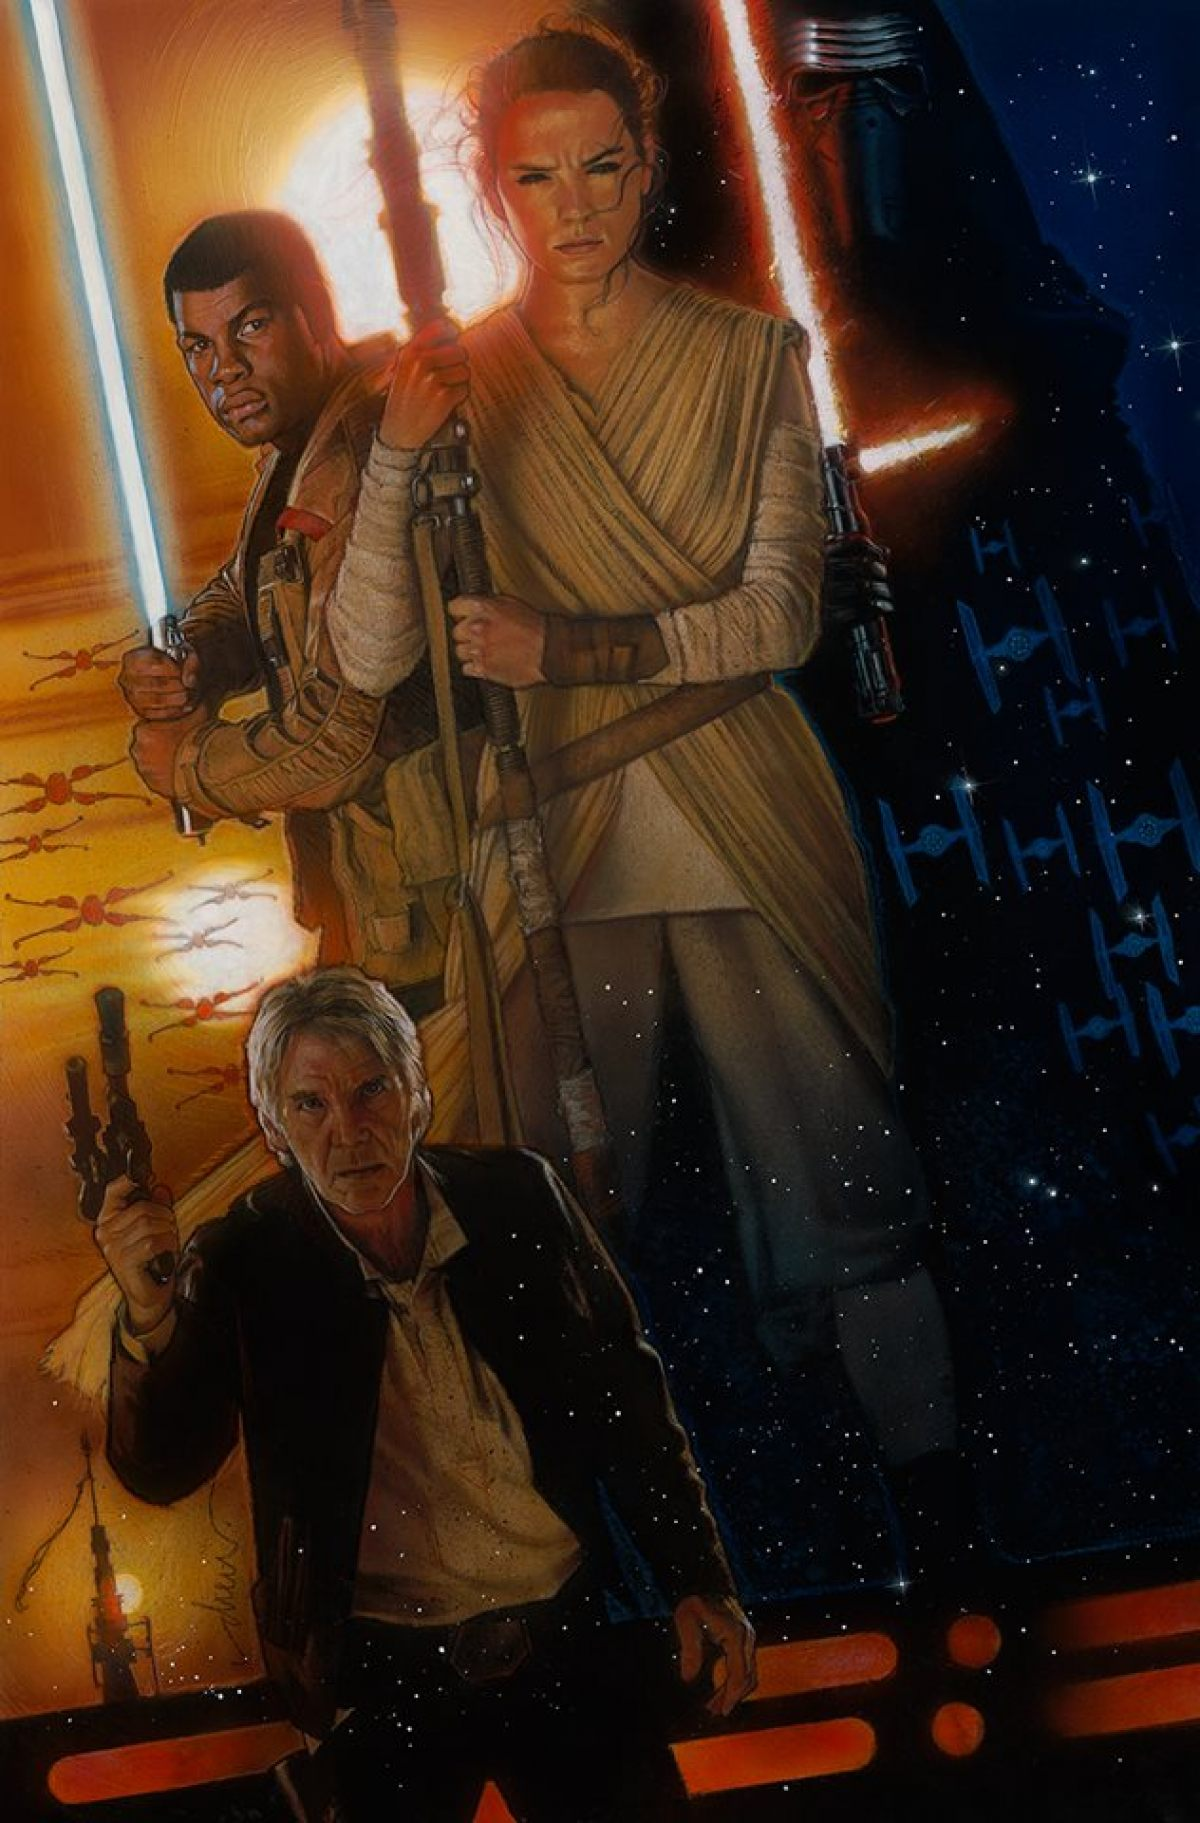 Drew Struzan The Force Awakens